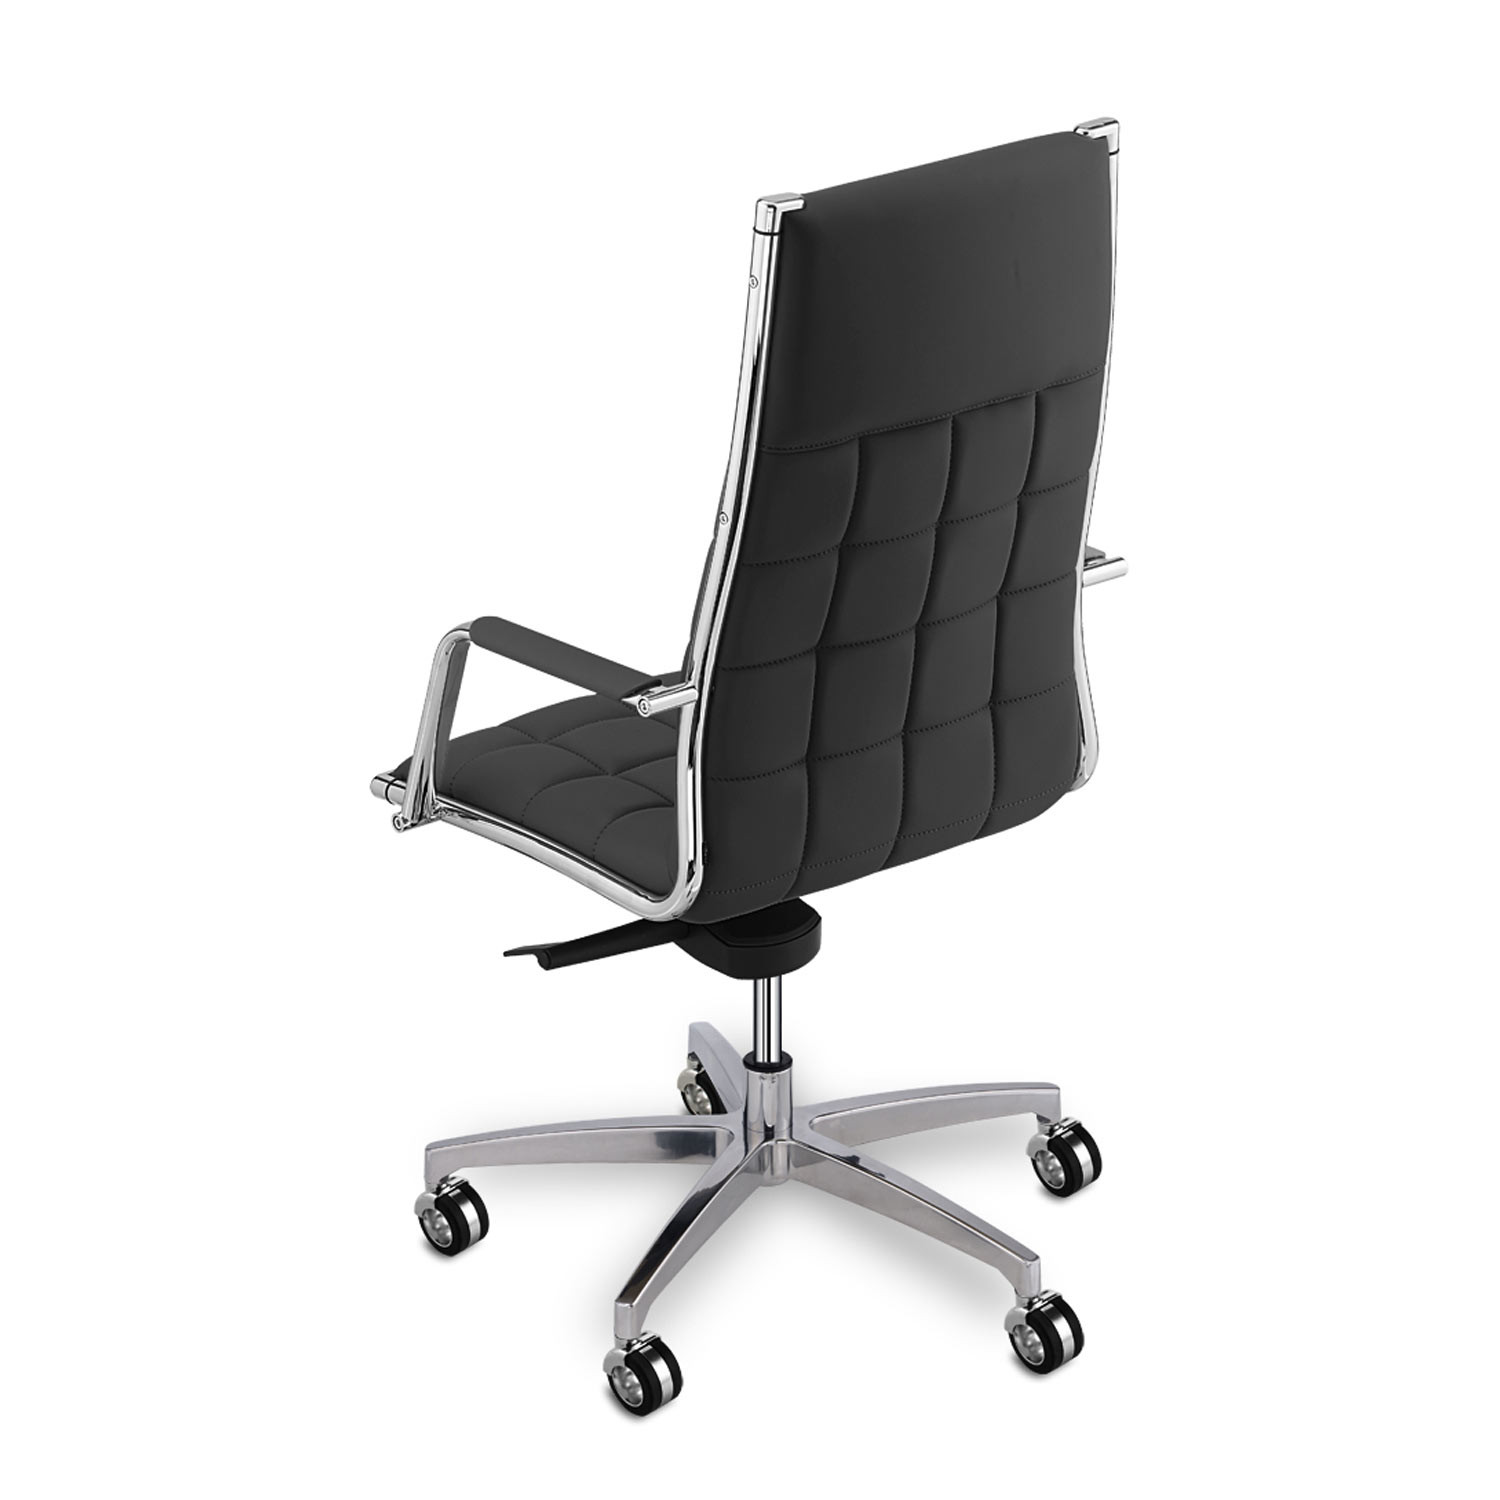 Vega S Conference Chair